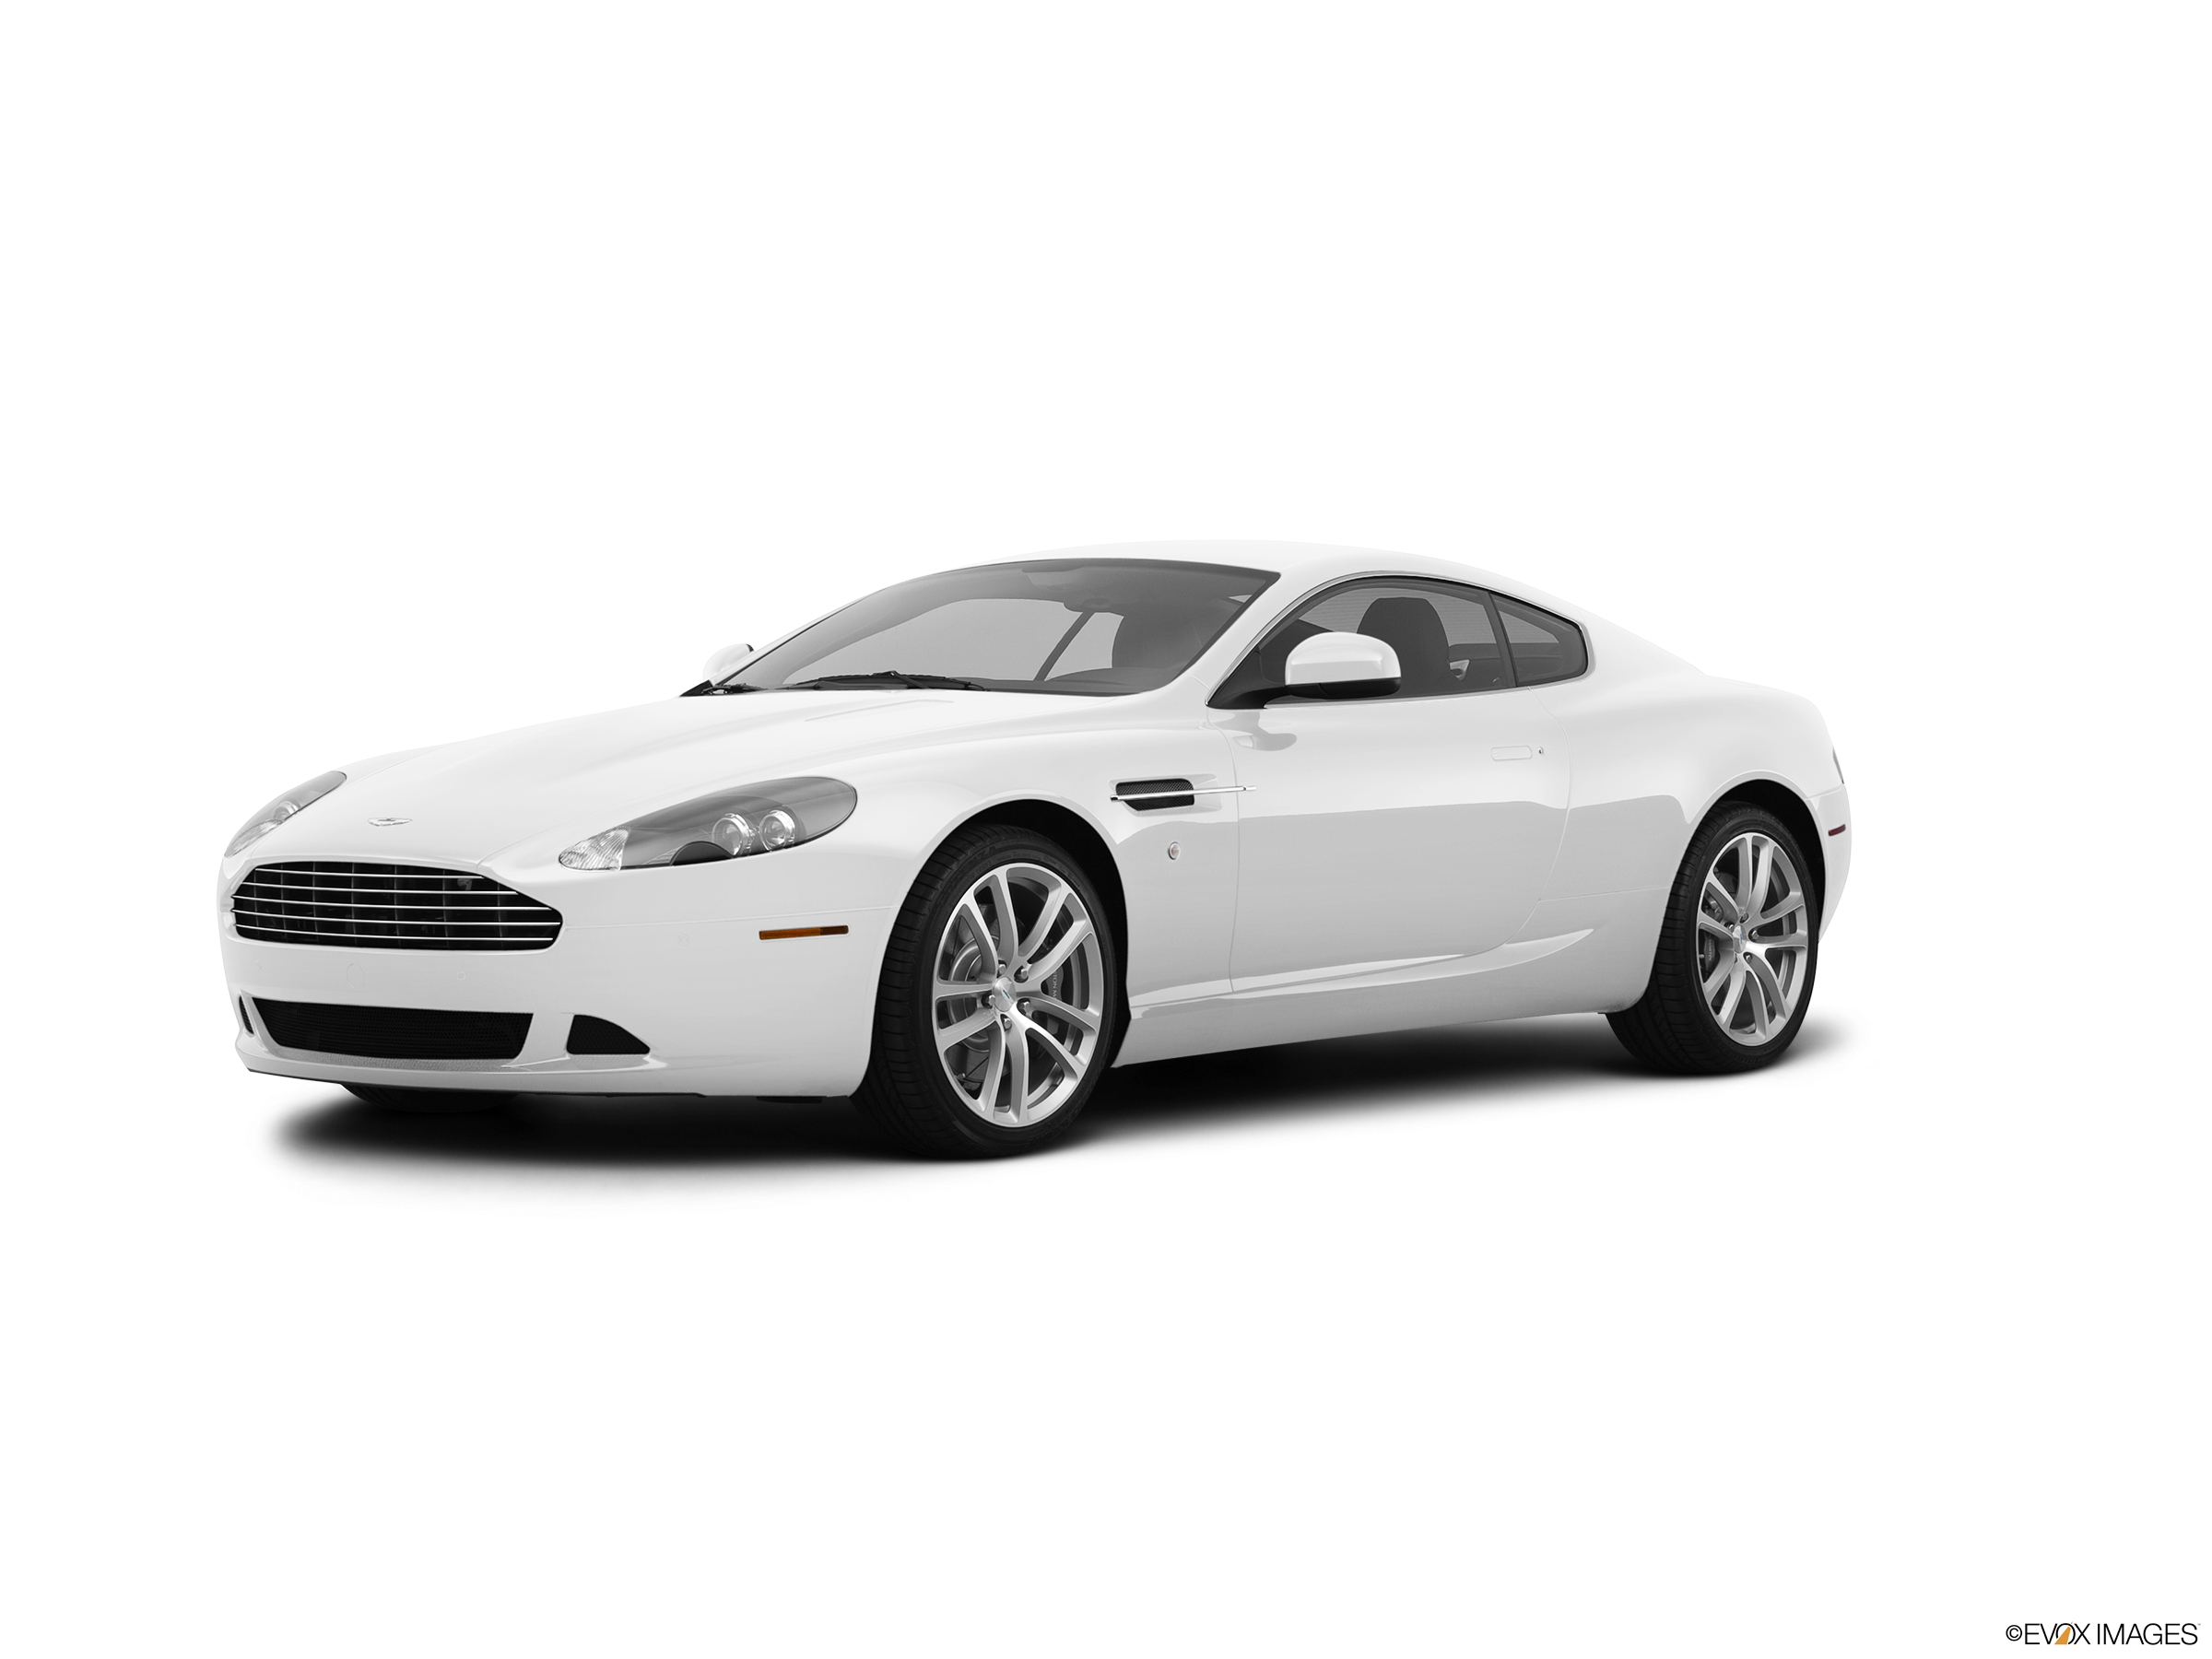 2012 Aston Martin Db9 Values Cars For Sale Kelley Blue Book